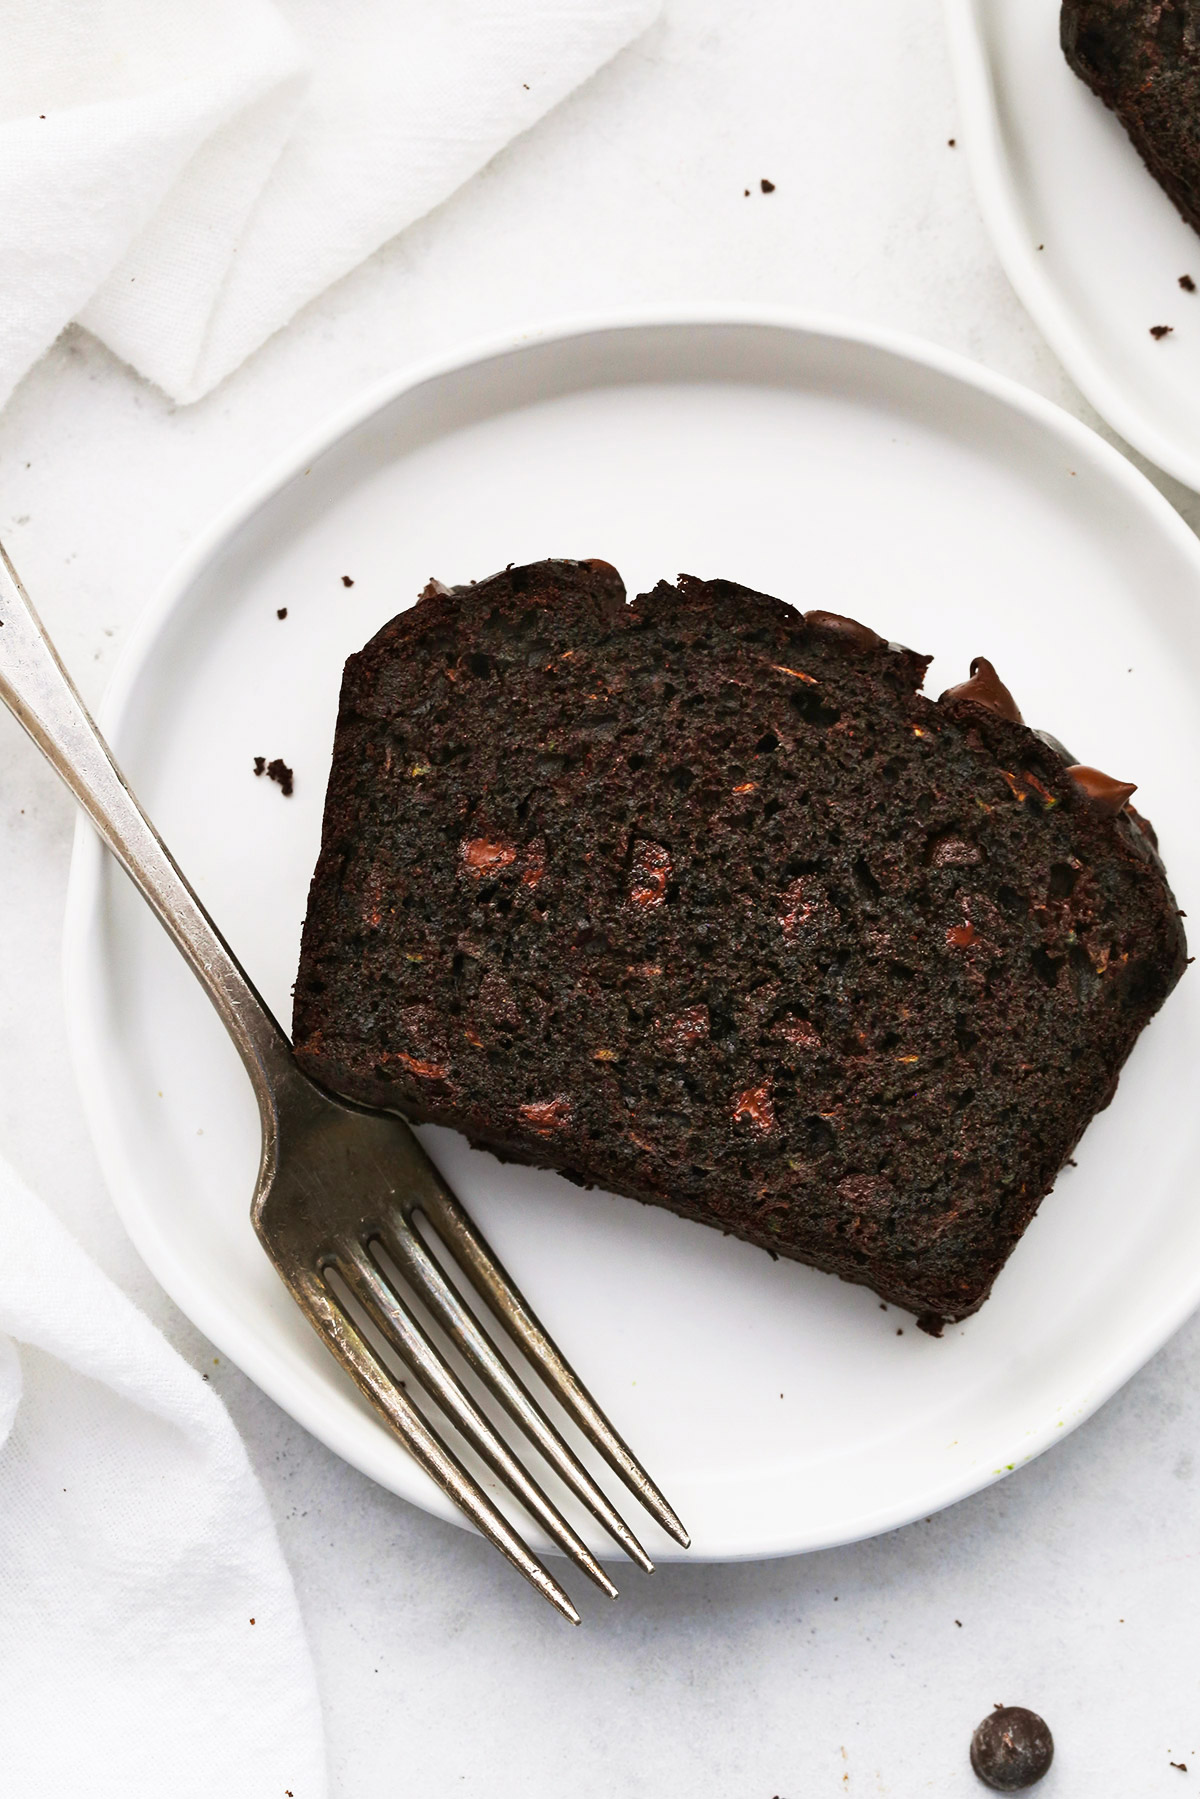 Close up view of a slice of gluten-free chocolate zucchini bread on a white plate